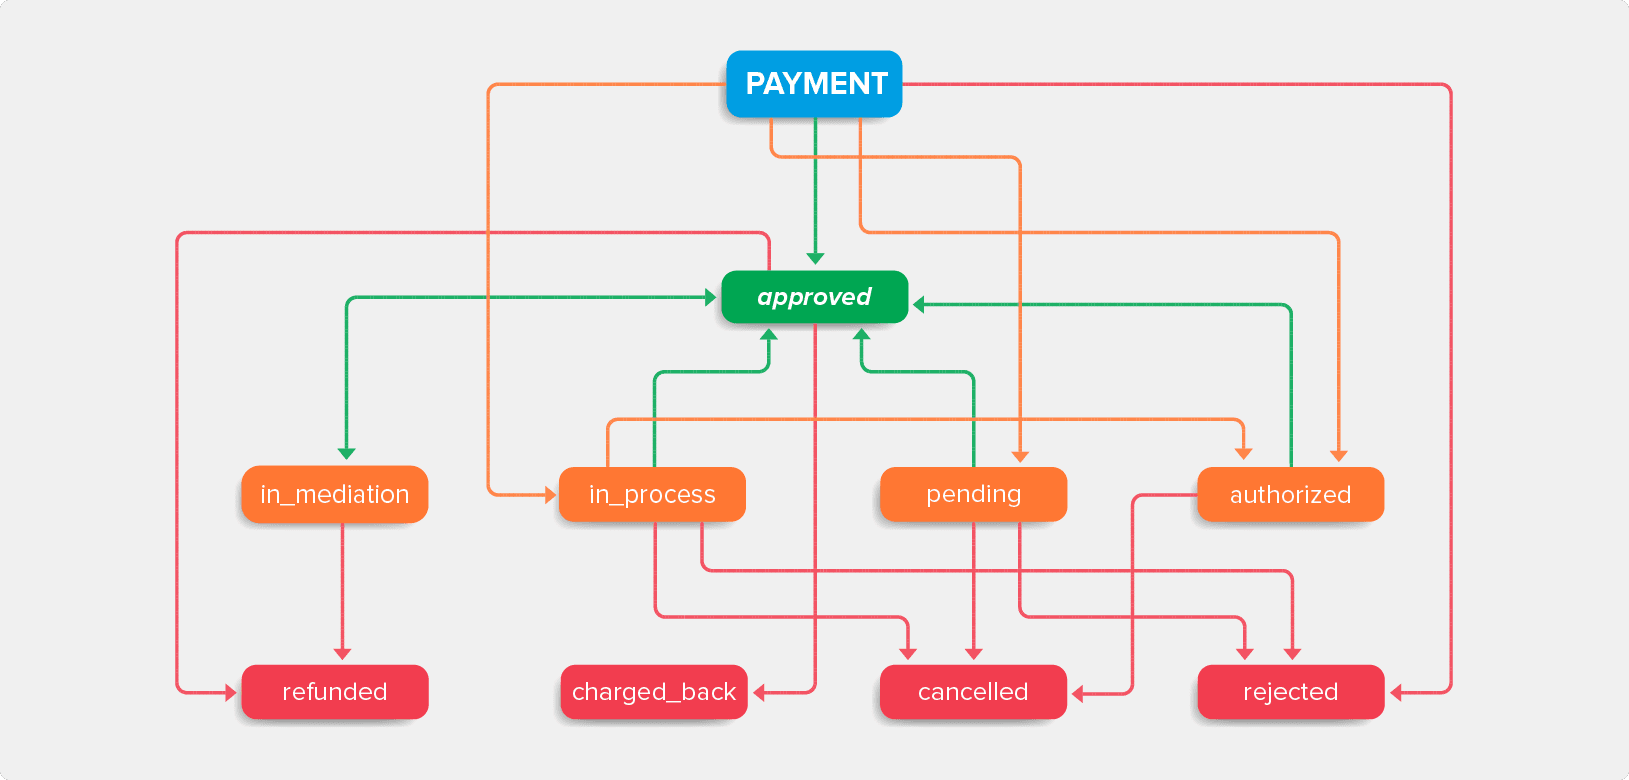 payment-status